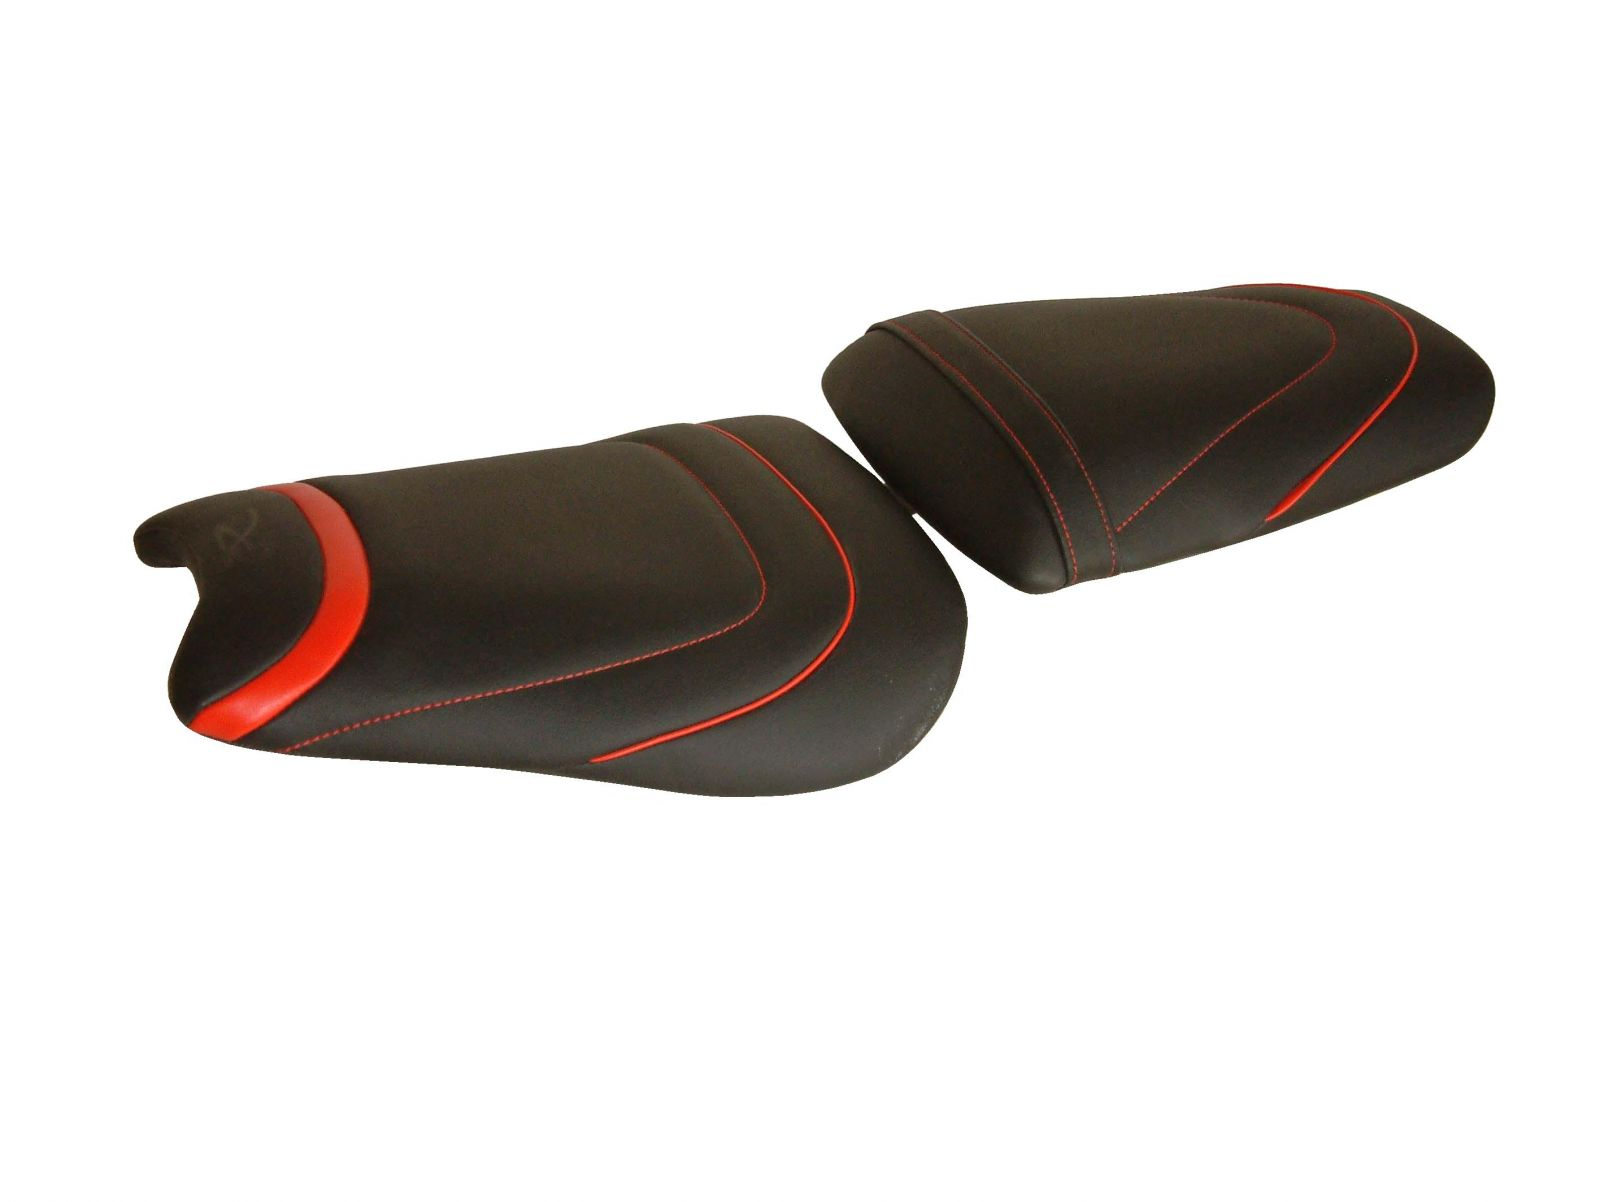 Housse de selle design hsd2262 honda cbr 600 rr 2003 for Housse de selle